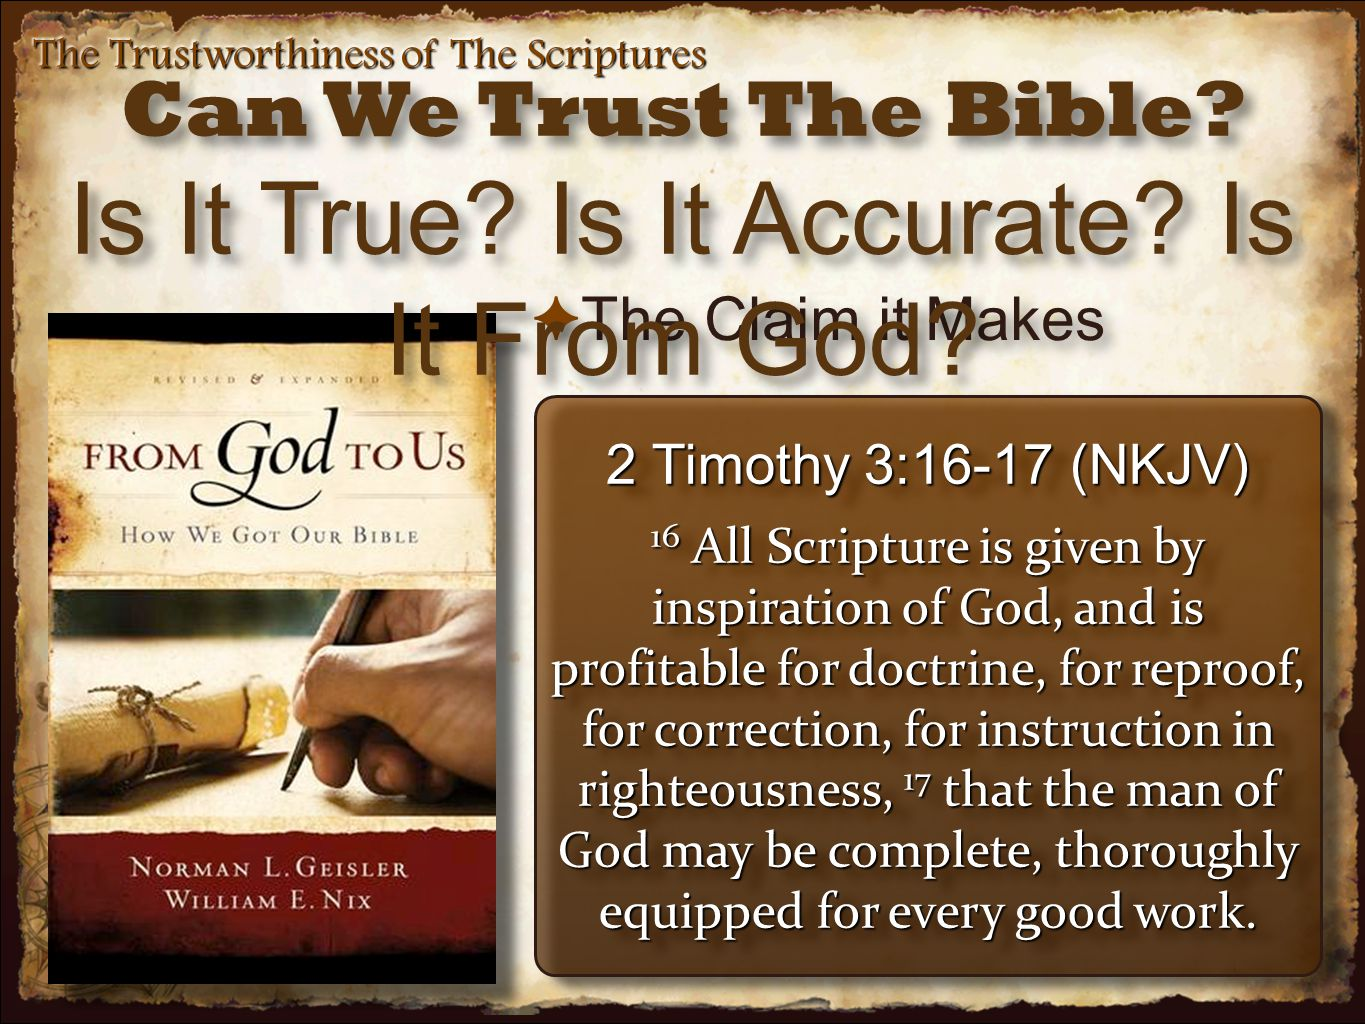 ✦ The Claim it Makes The Trustworthiness of The Scriptures Can We Trust The Bible.